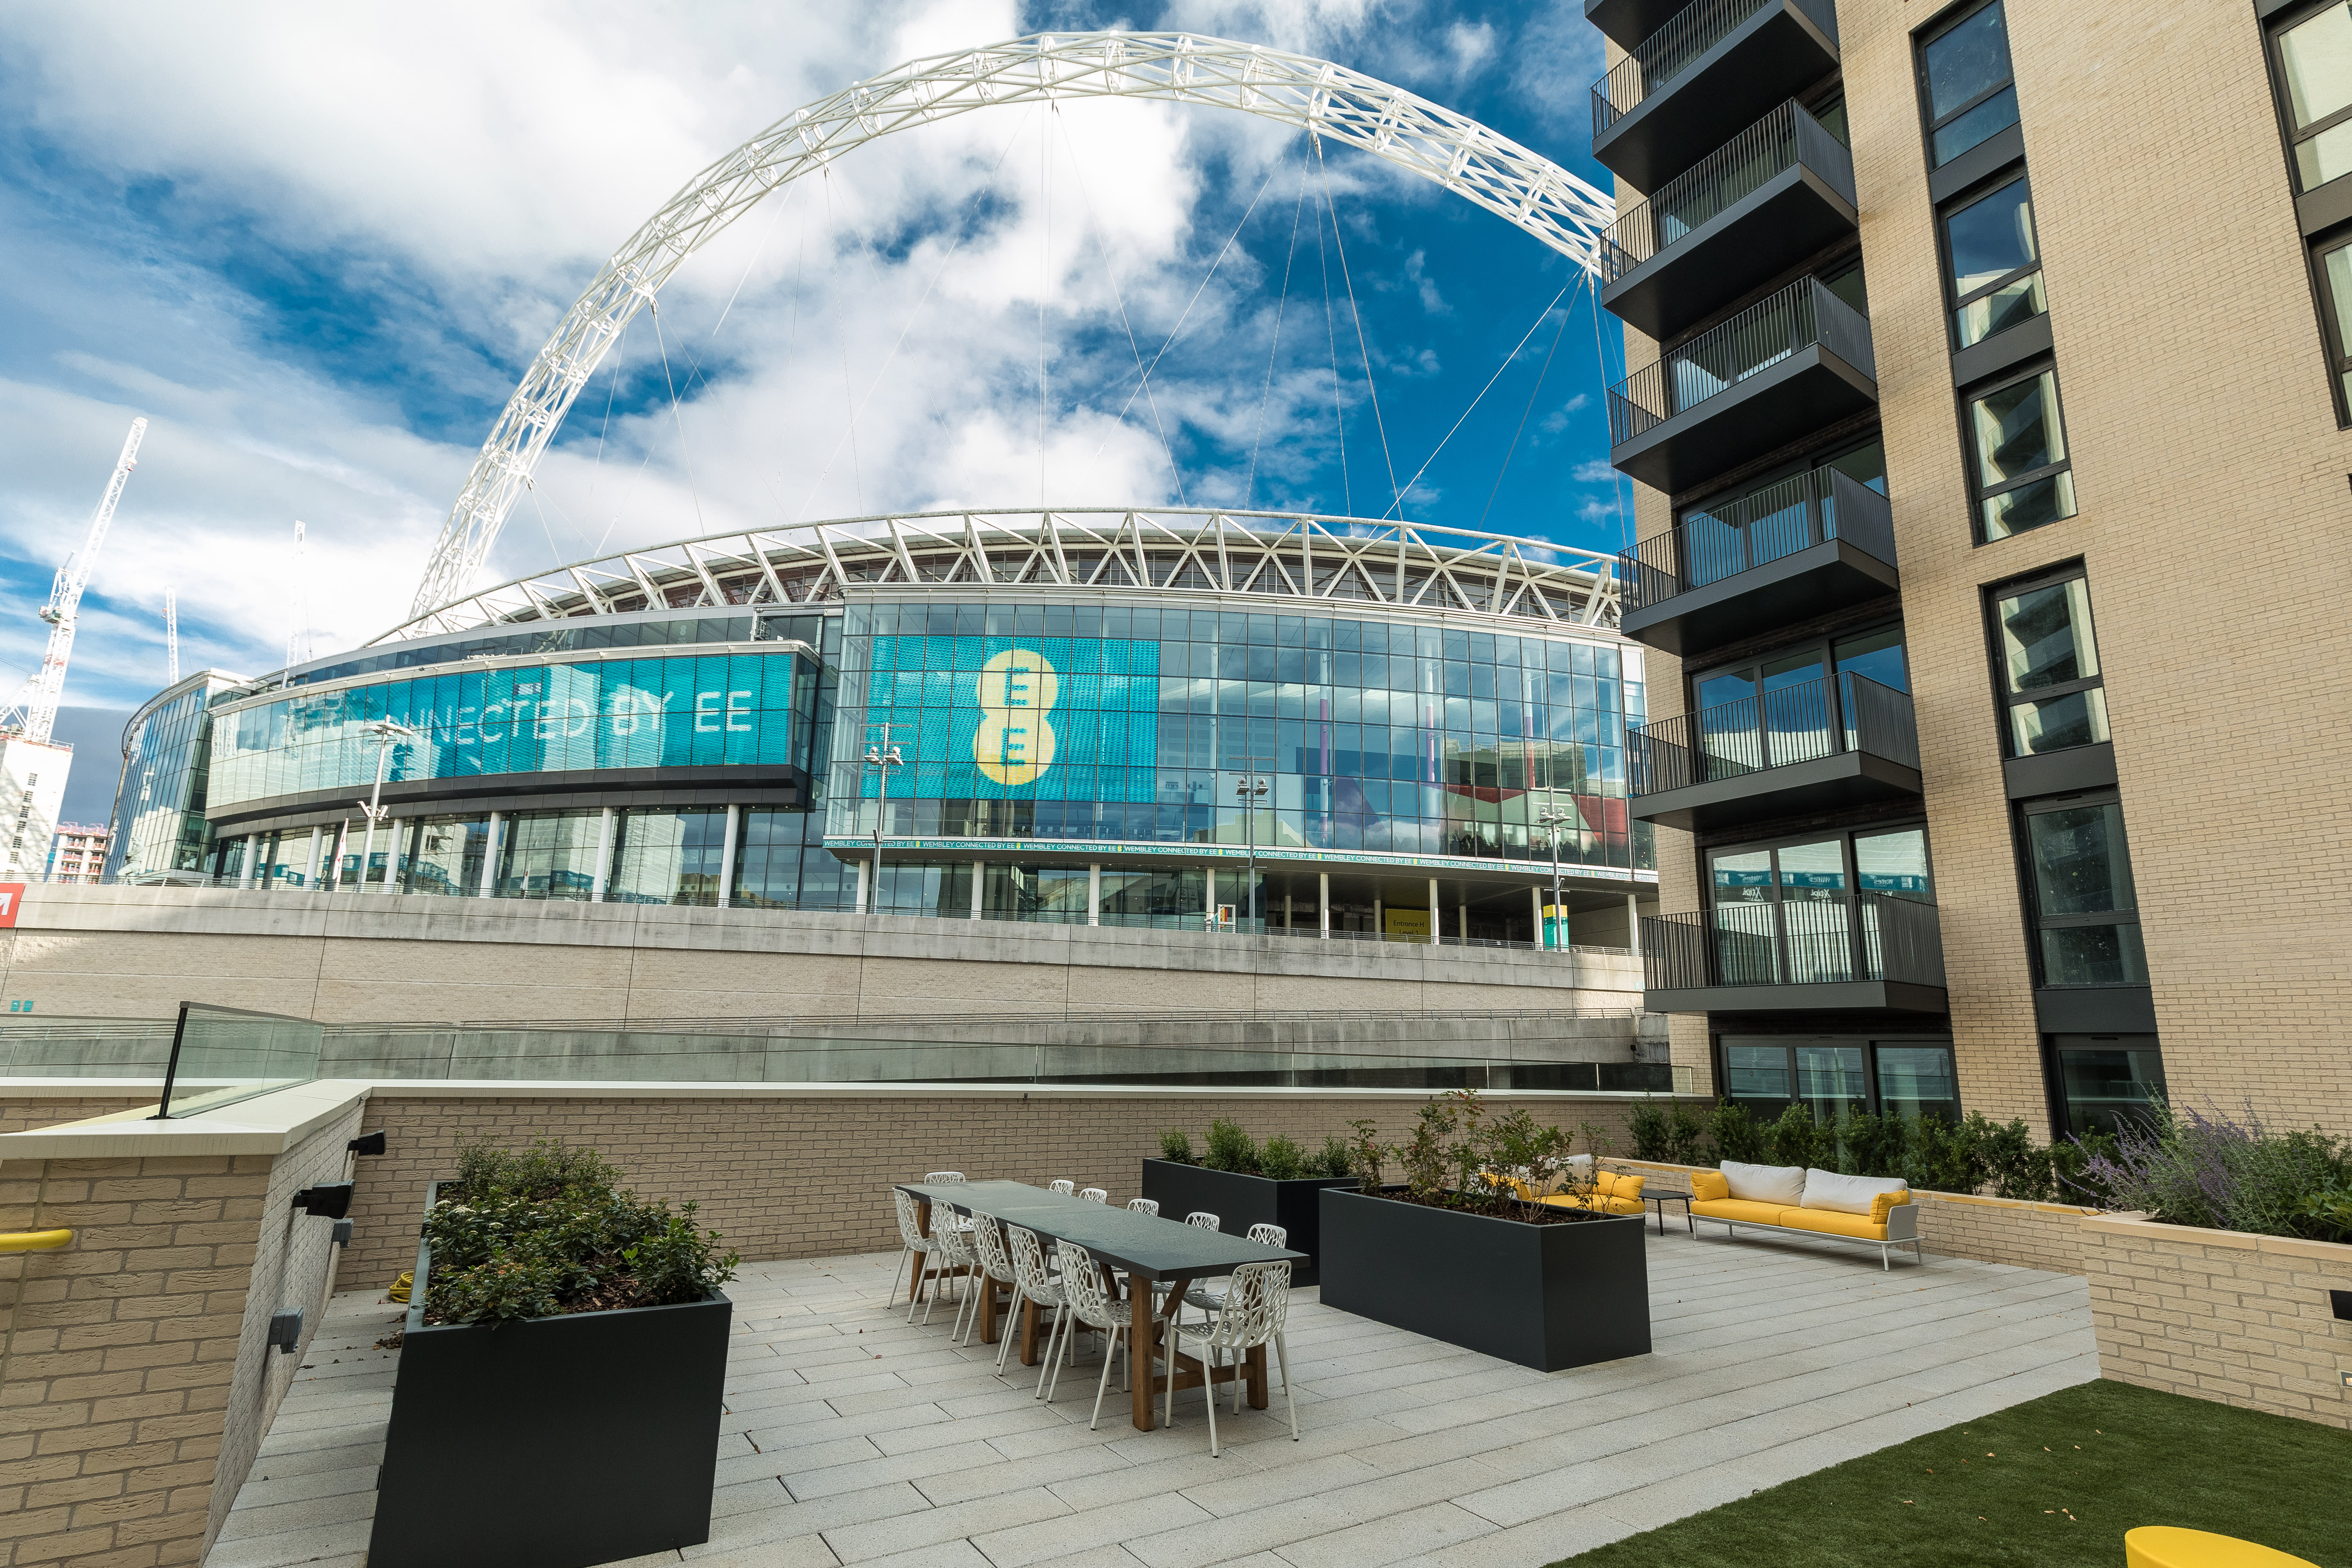 Your chance to live on Wembley Way